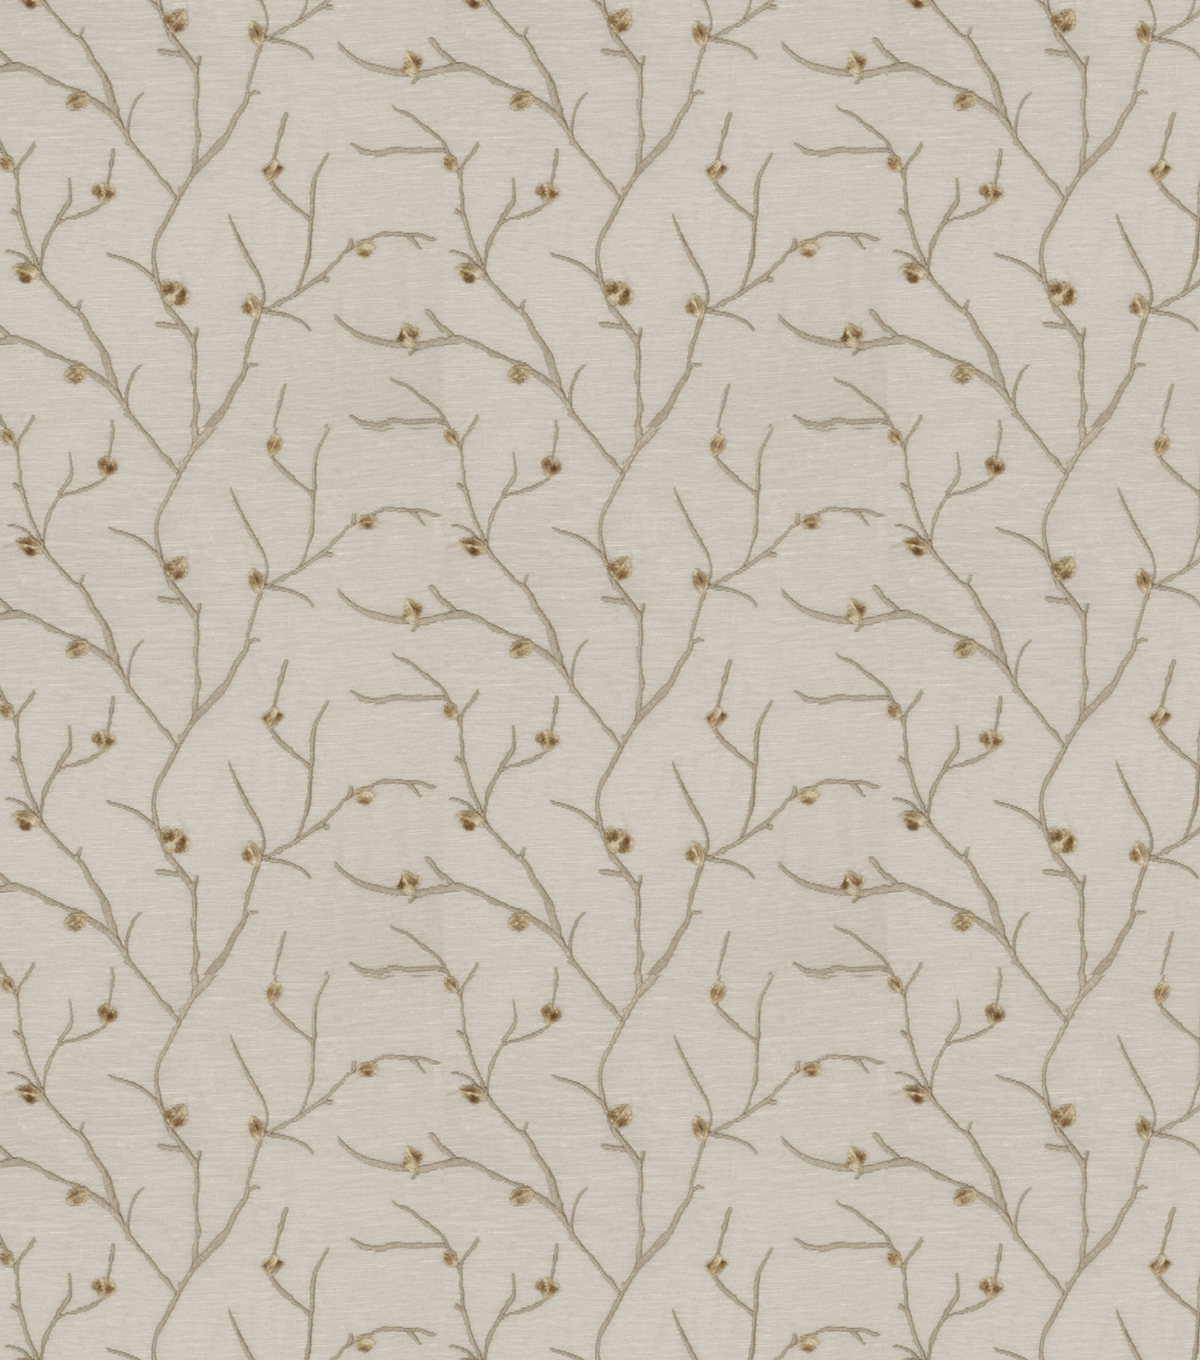 Home Decor 8x8 Fabric Swatch-Eaton Square Remedy Taupe